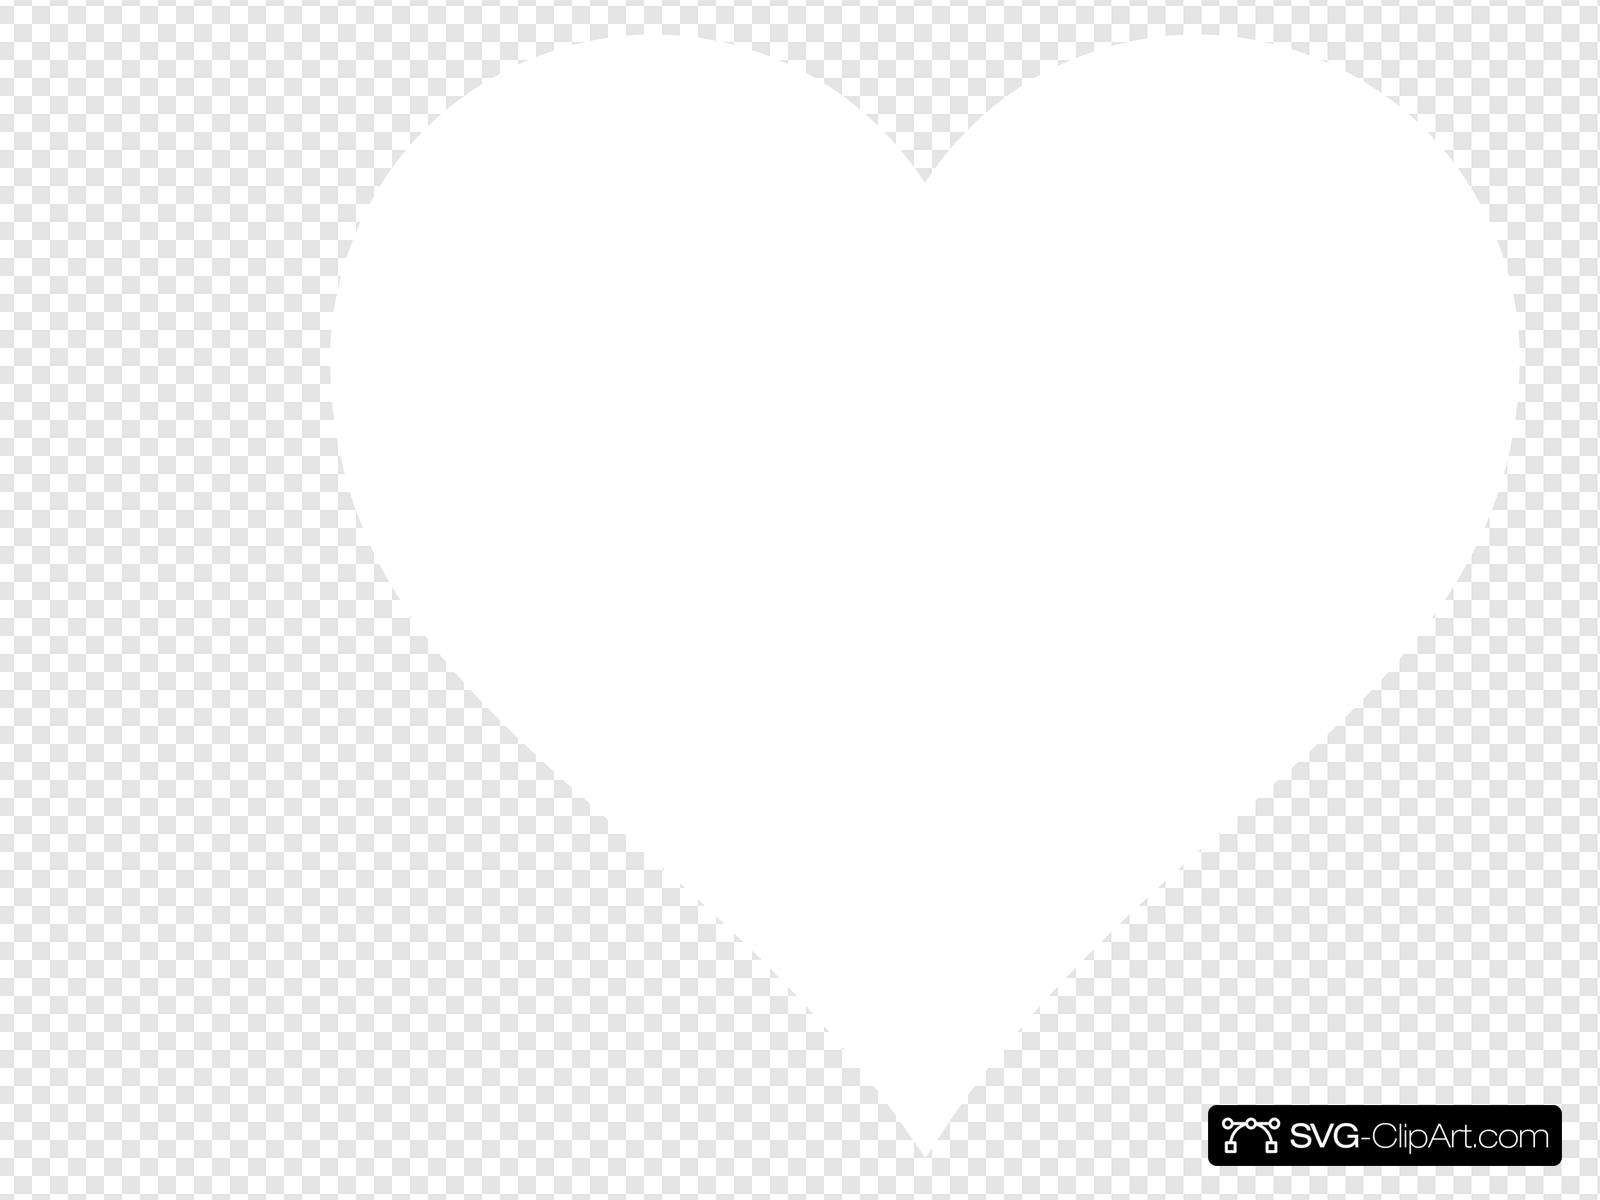 White Heart Clip art, Icon and SVG.